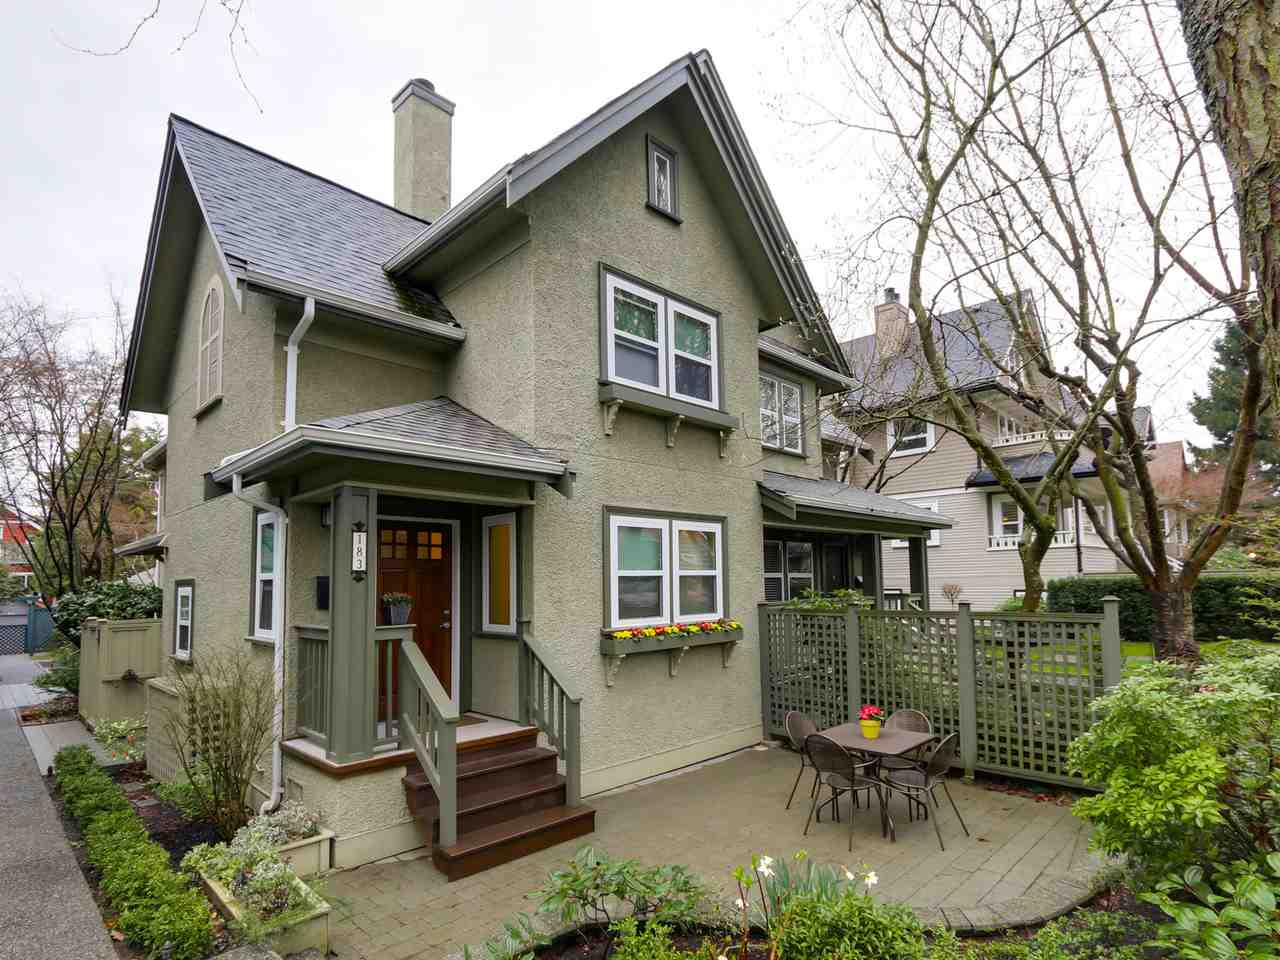 Photo 21: 183 W 13TH Avenue in Vancouver: Mount Pleasant VW Townhouse for sale (Vancouver West)  : MLS® # R2041356